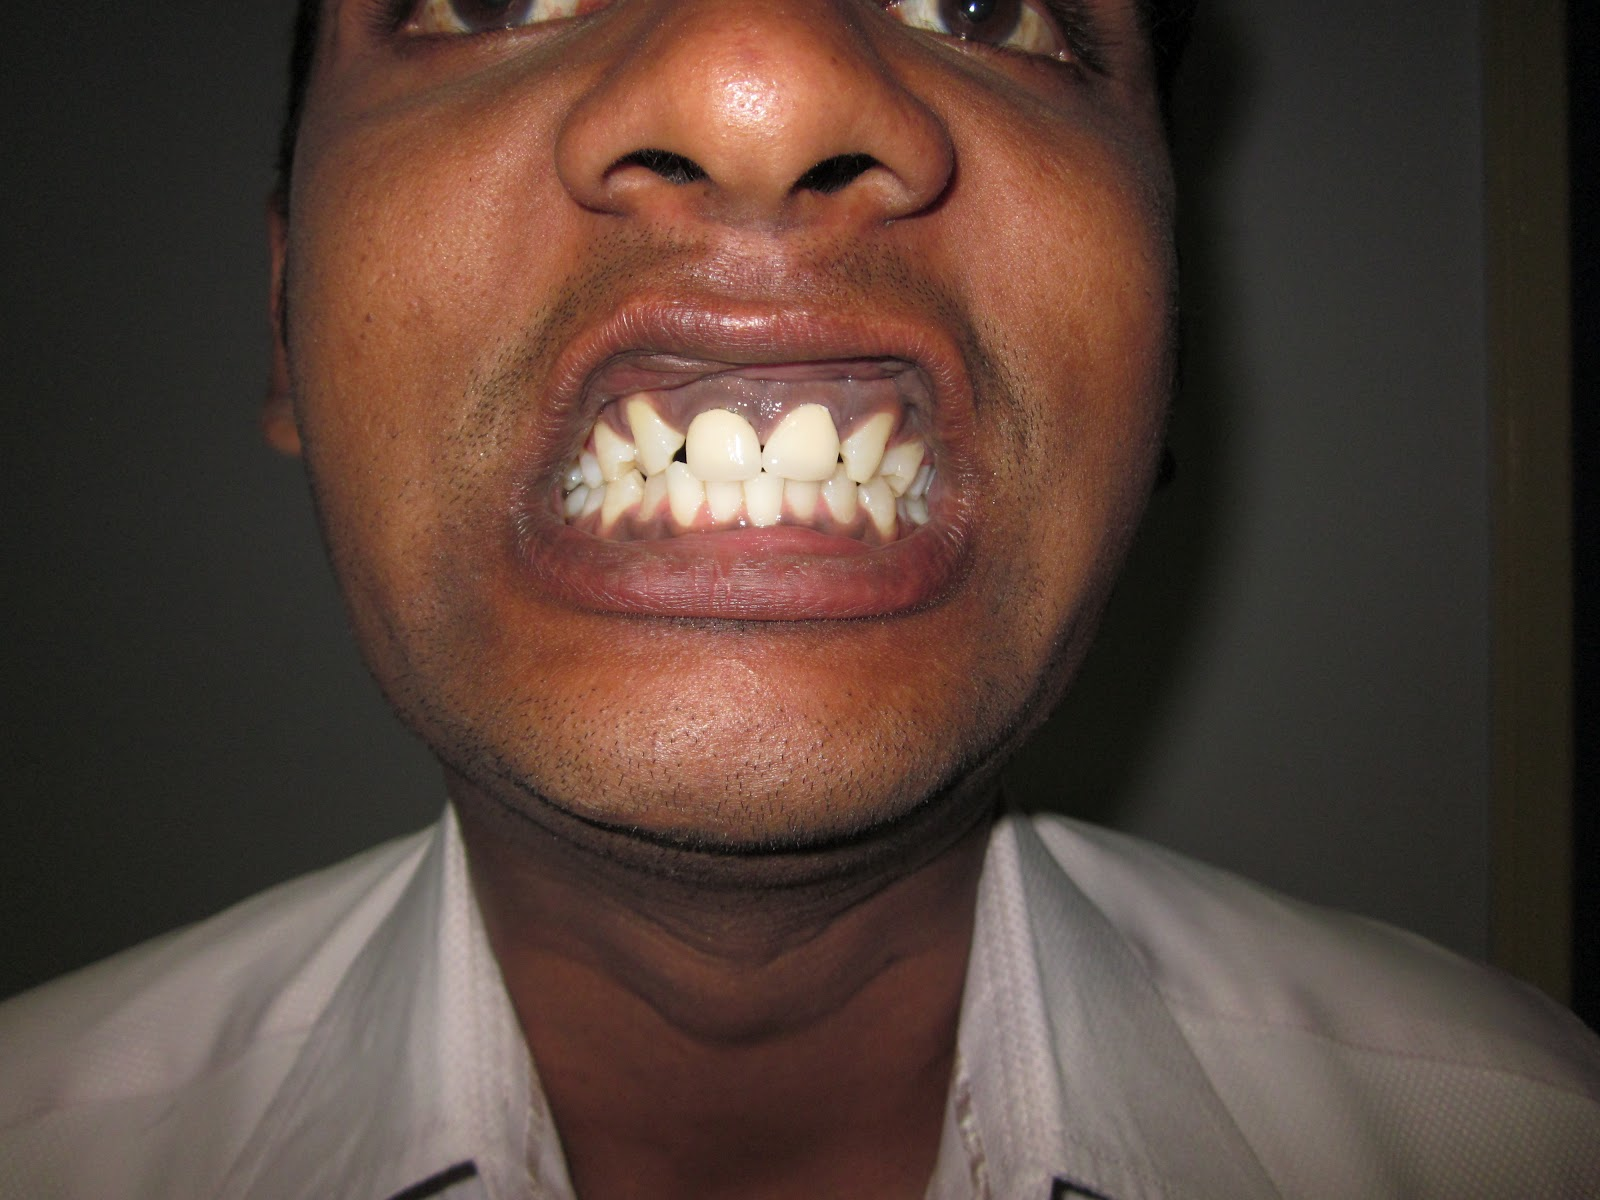 MANDIBLE AND LE FORT 1 FRACTURE MAXILLA - OUTCOME-3.bp.blogspot.com